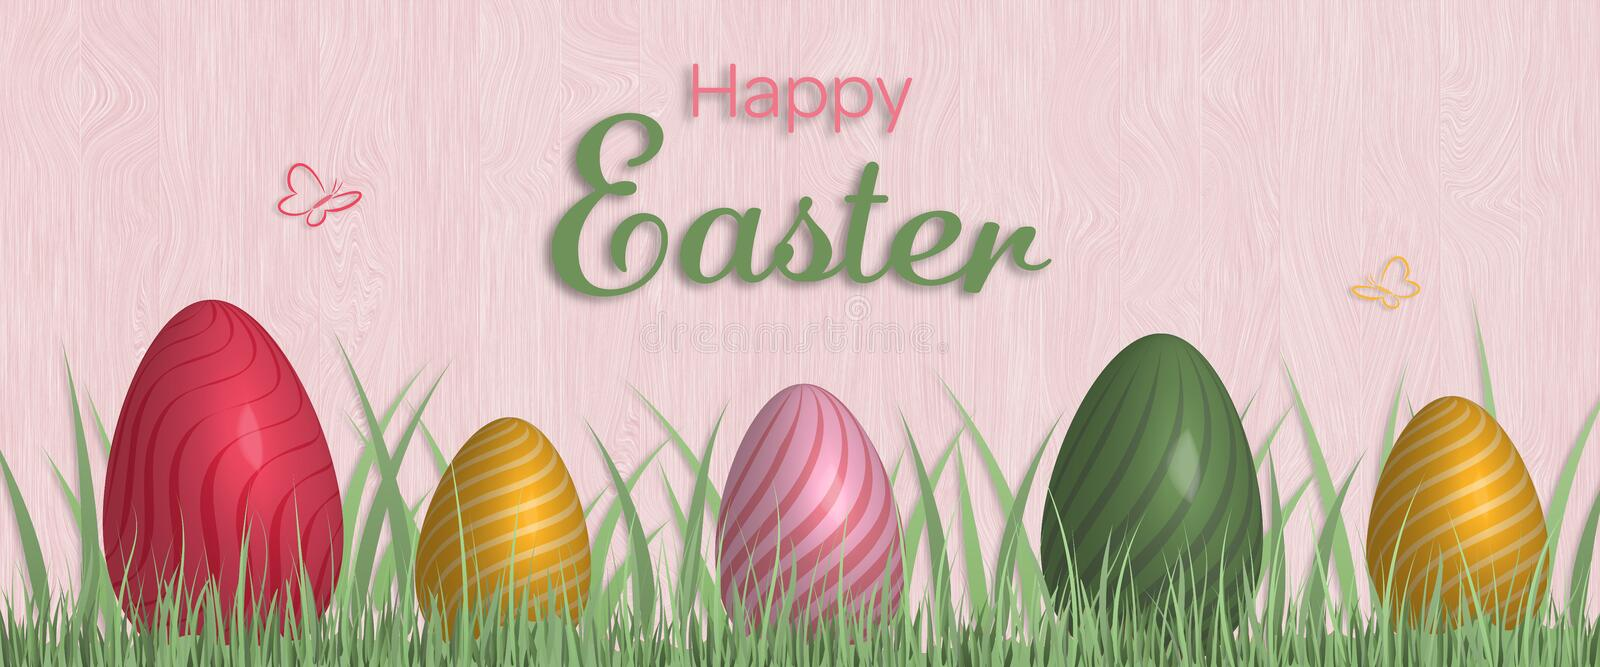 Happy Easter - Eggs royalty free illustration